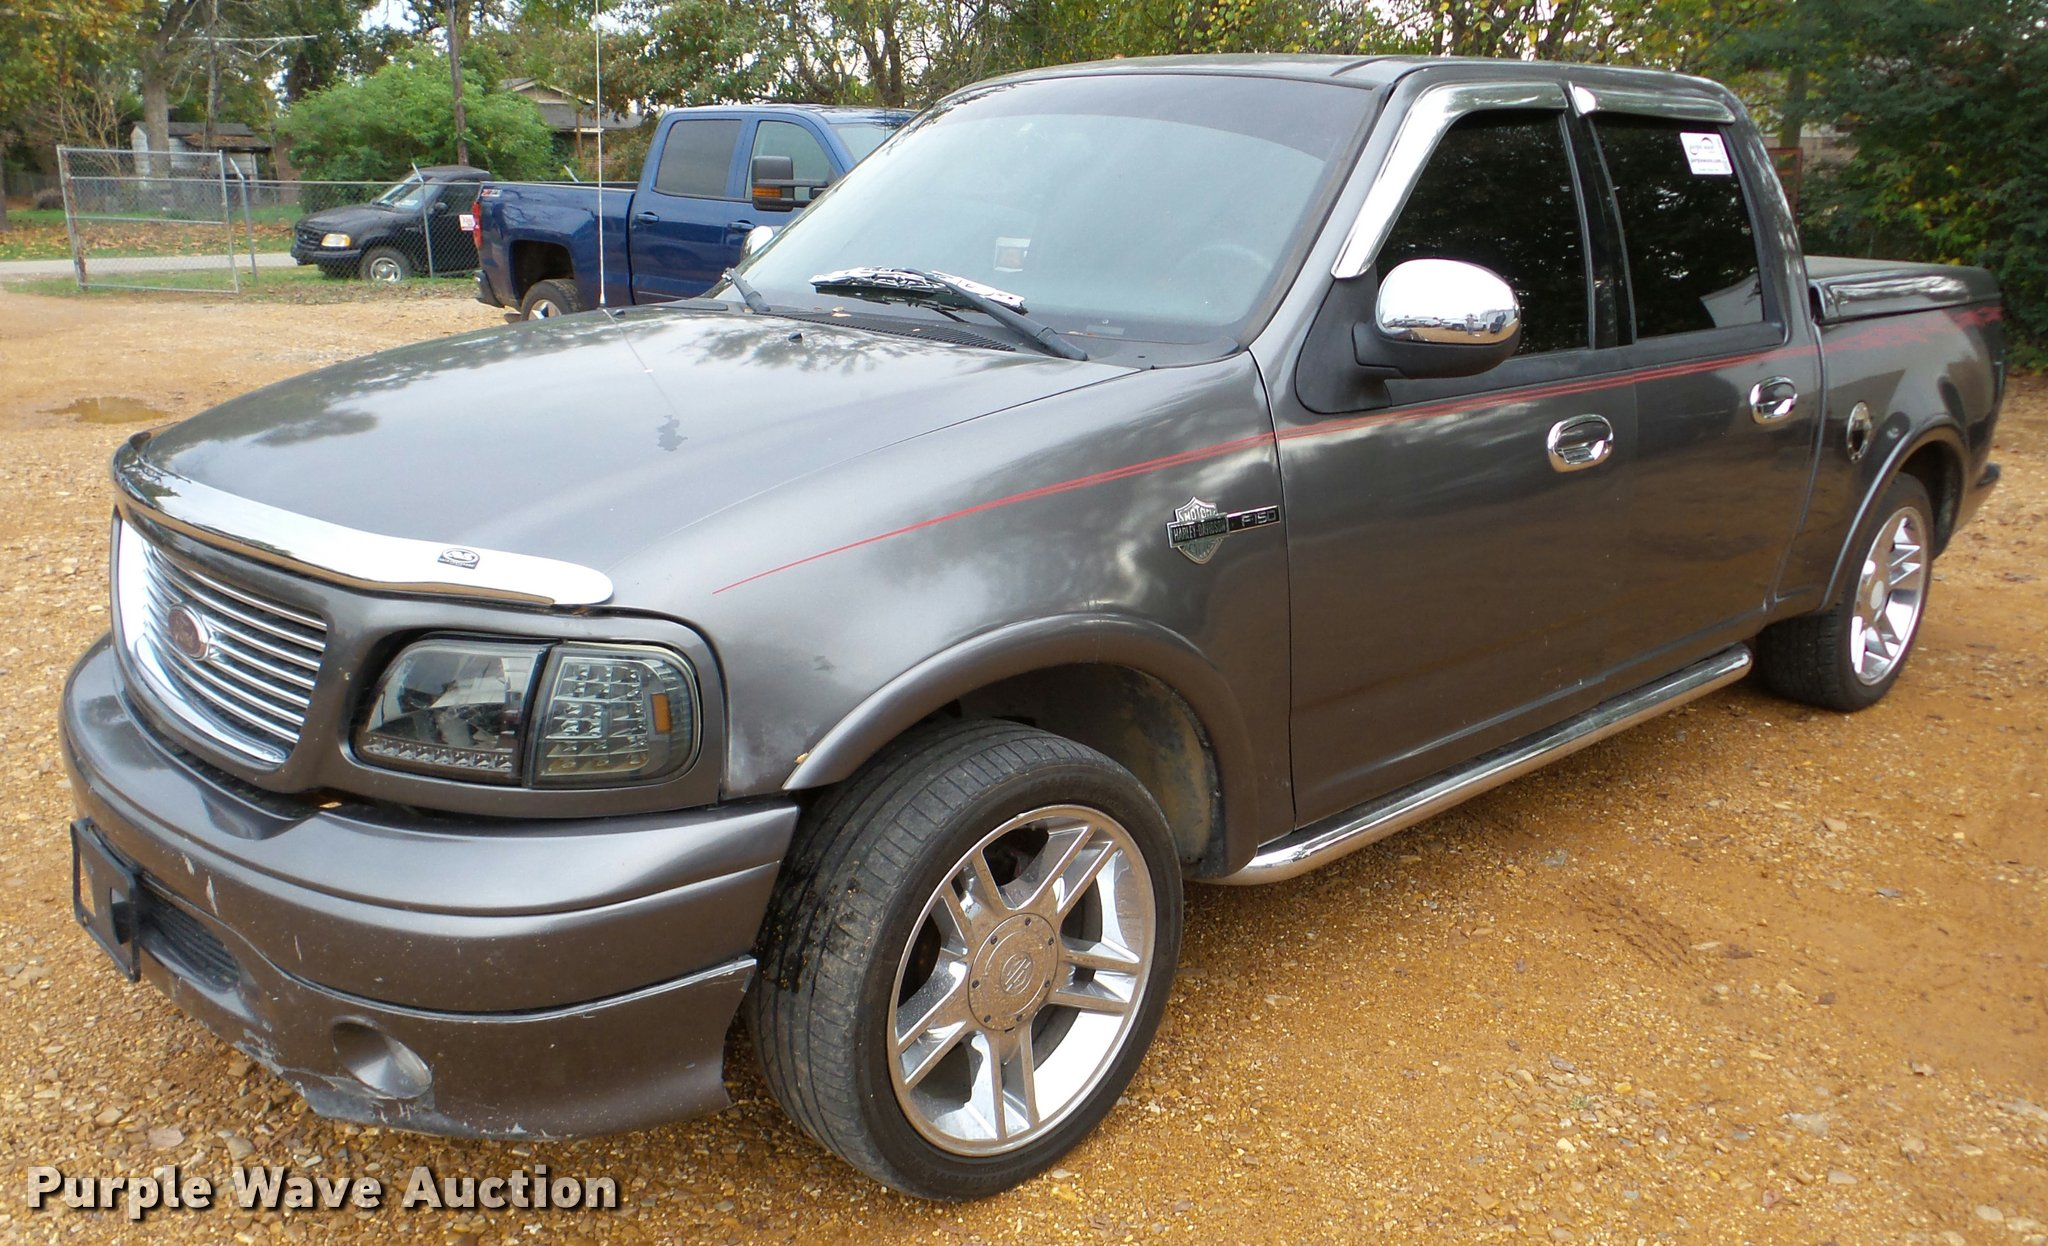 2002 Ford F150 Harley Davidson SuperCrew pickup truck | Item...